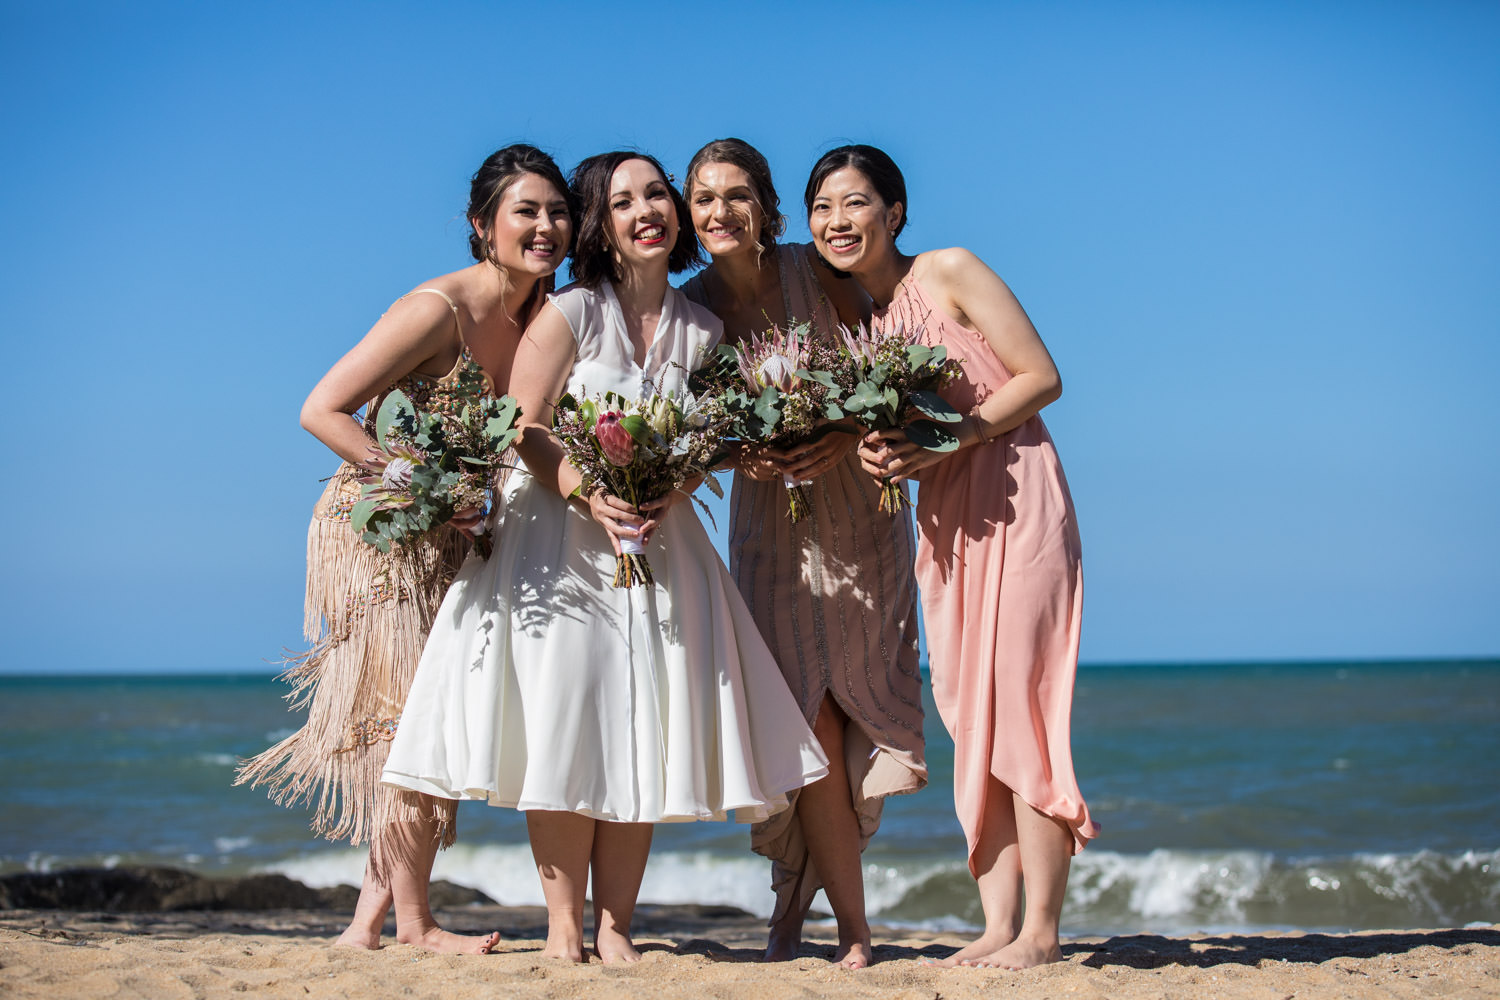 25 Port Douglas Wedding Photographer Catseye Productions Rathmell blog 044A6881